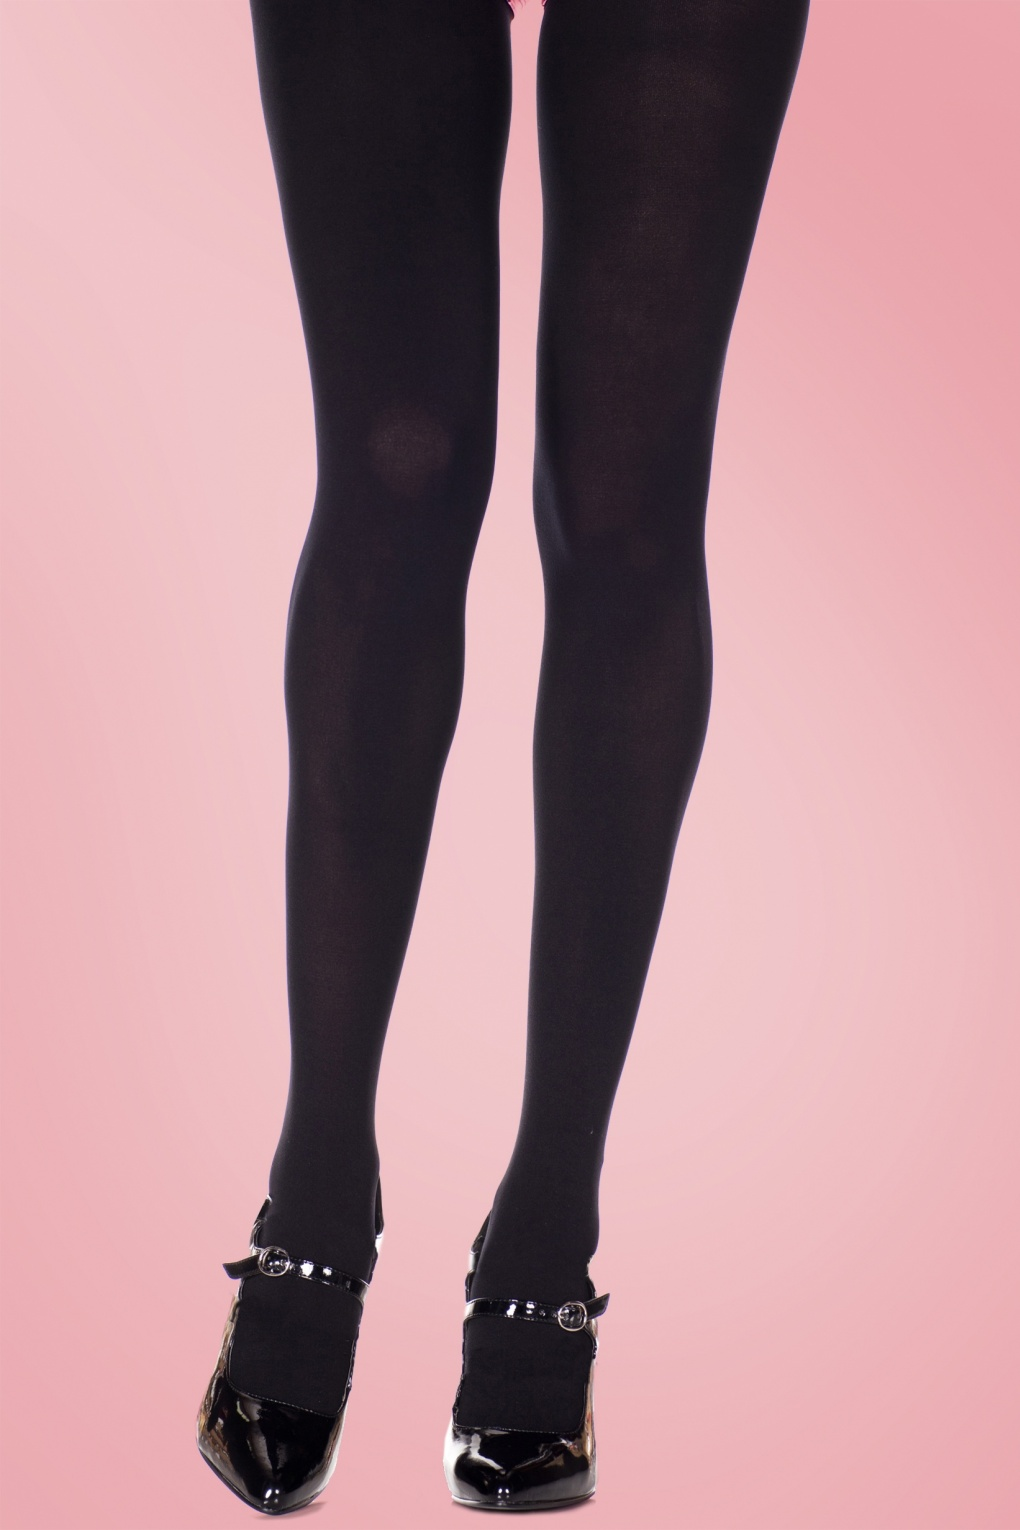 1960s Tights, Stockings, Panty Hose, Knee High Socks Classy Black Queen Size Tights £5.29 AT vintagedancer.com